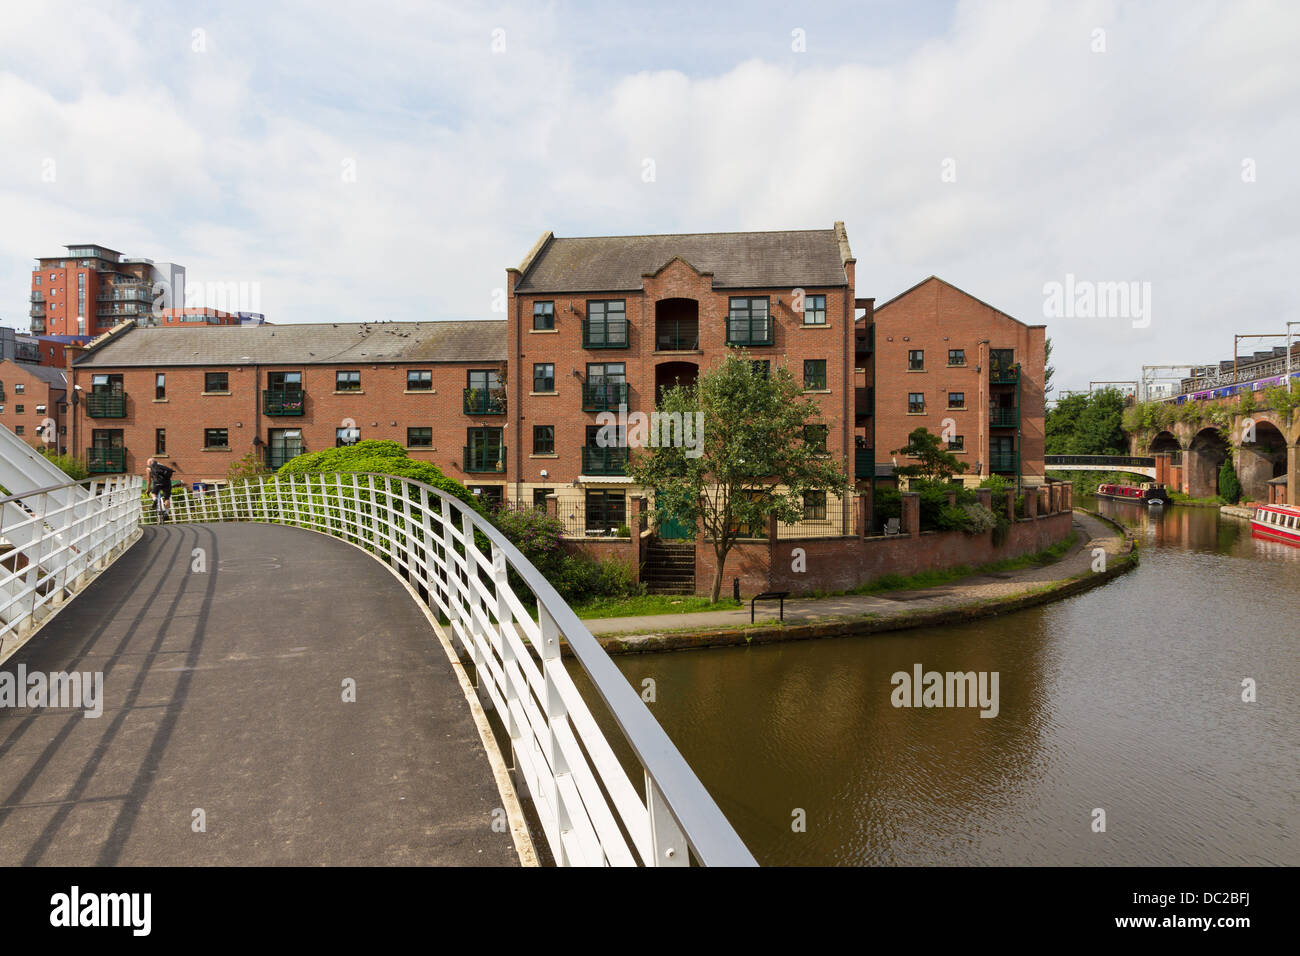 Looking from the Whitby and Bird Merchants Bridge towards Ship Canal House Apartments in the Castlefield area of - Stock Image